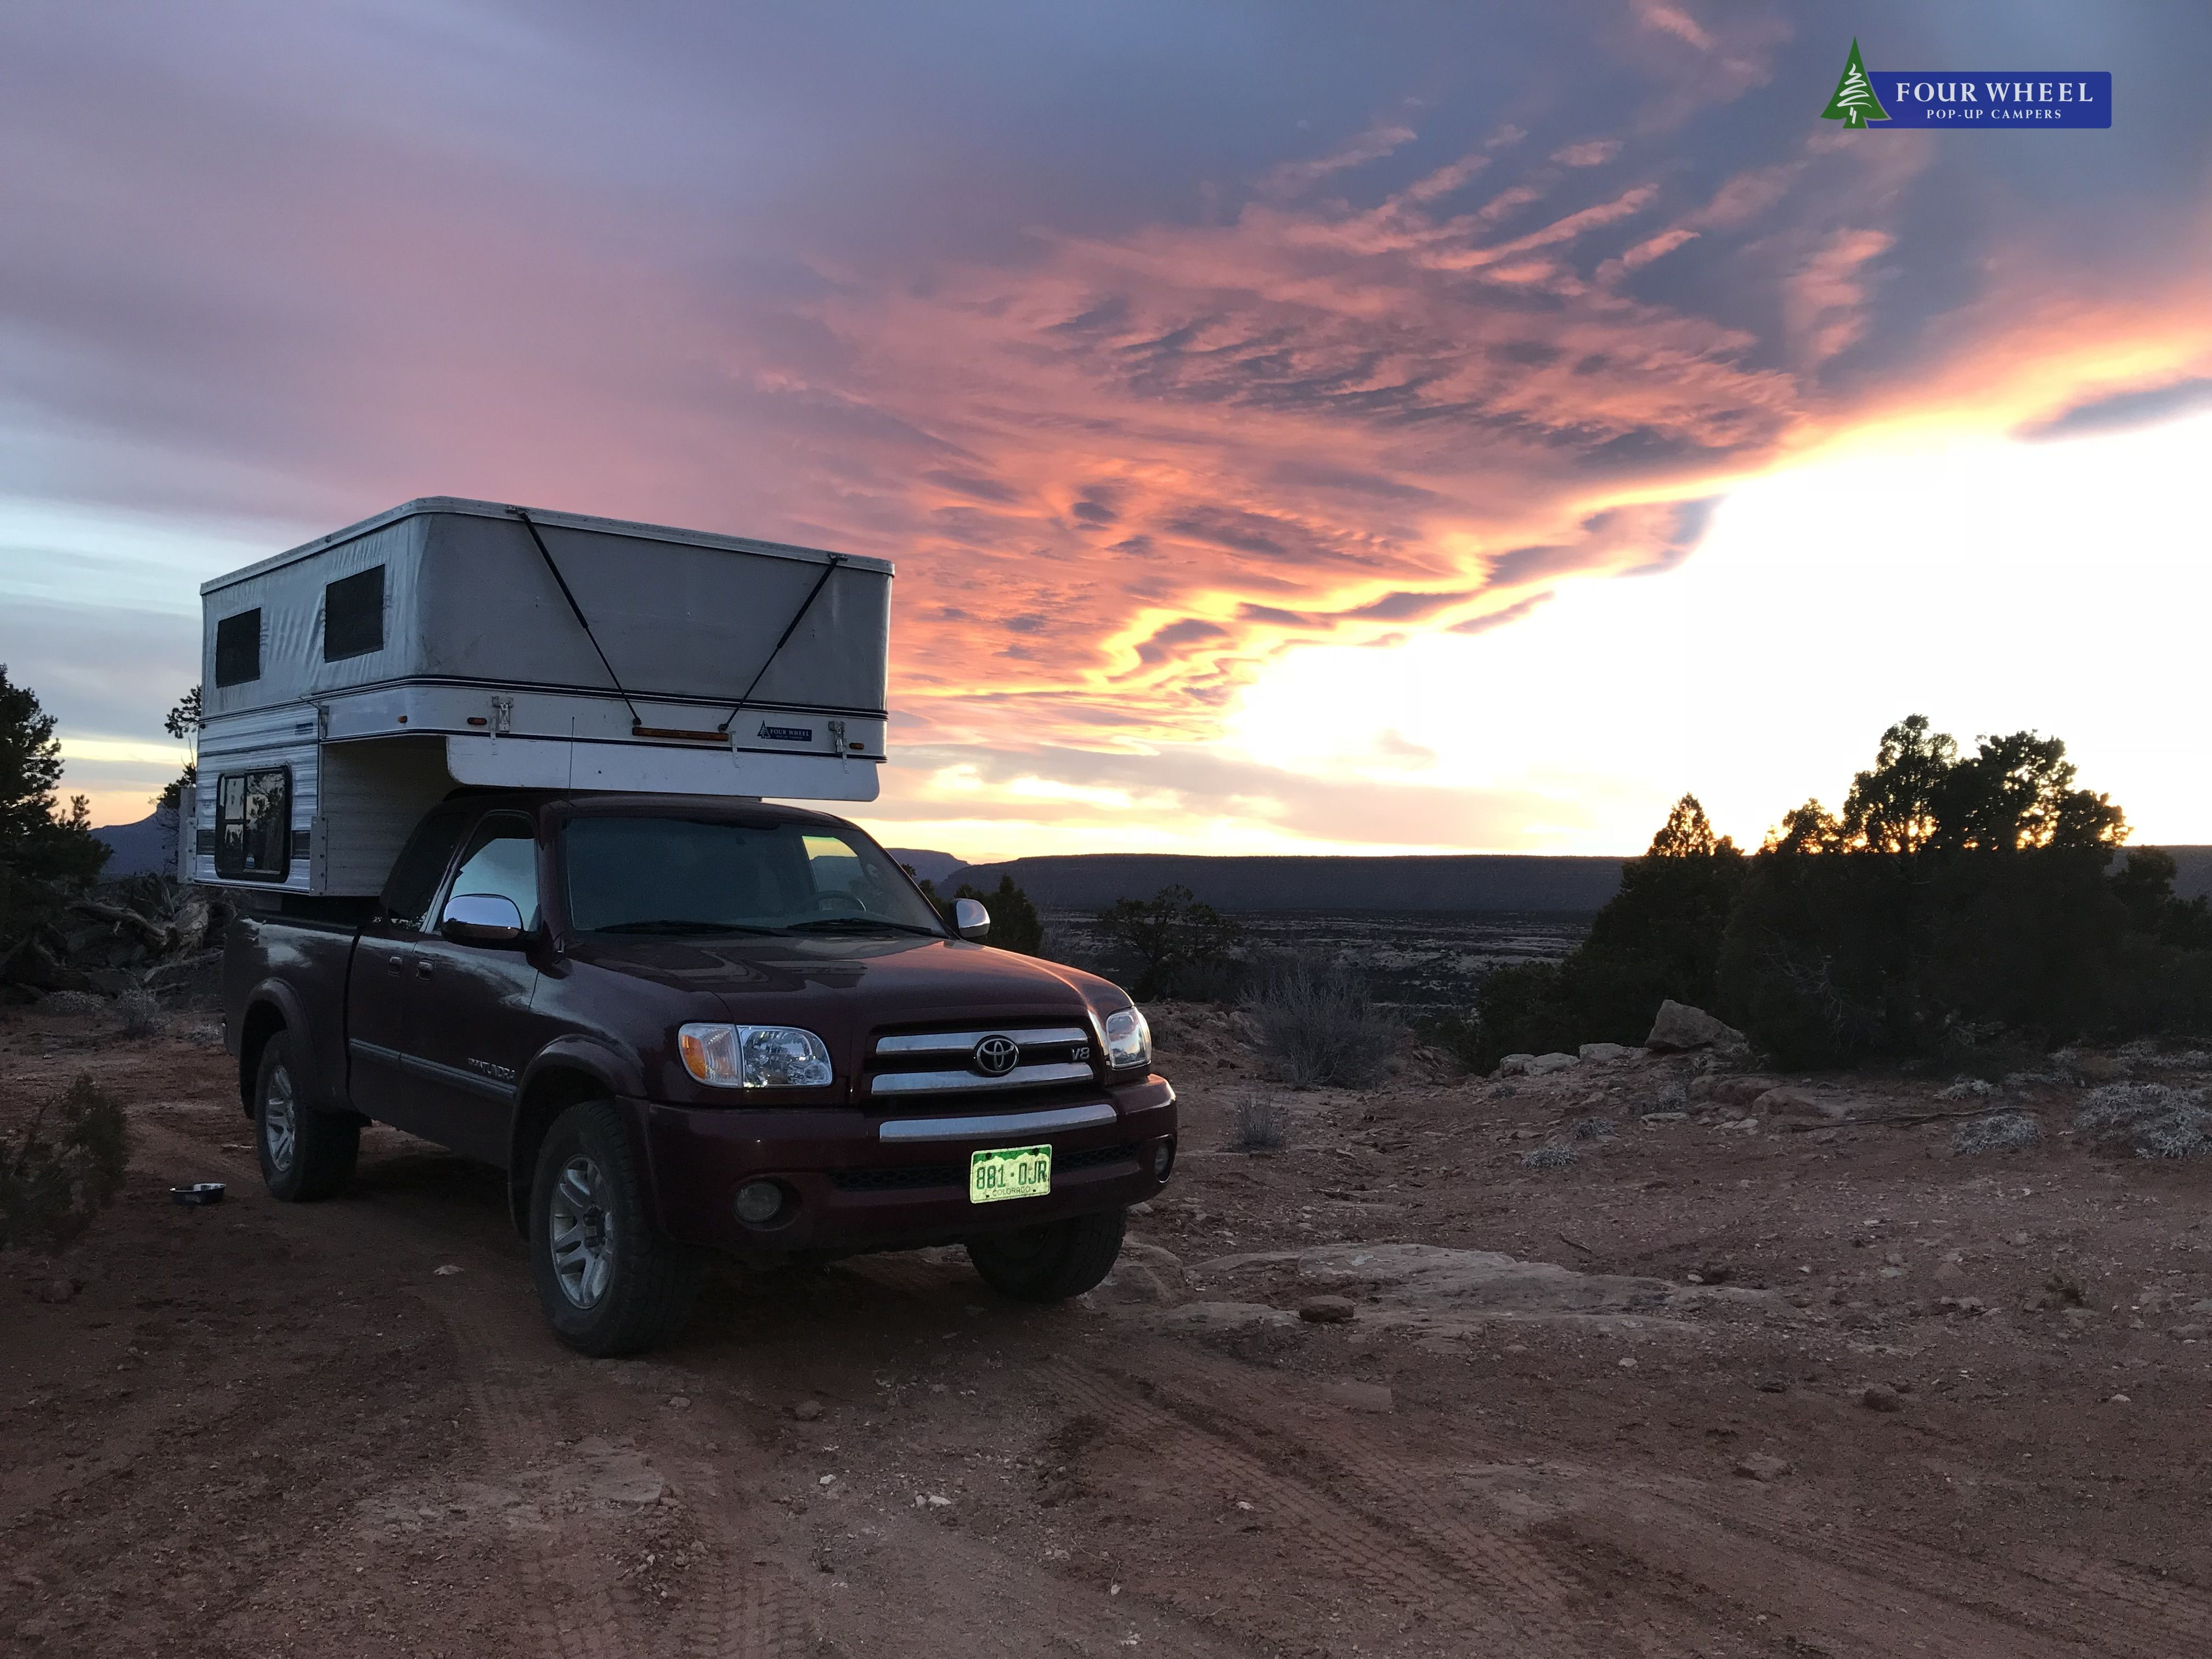 Four Wheel Camper On A Toyota Tundra Sunset Fourwheelcampers